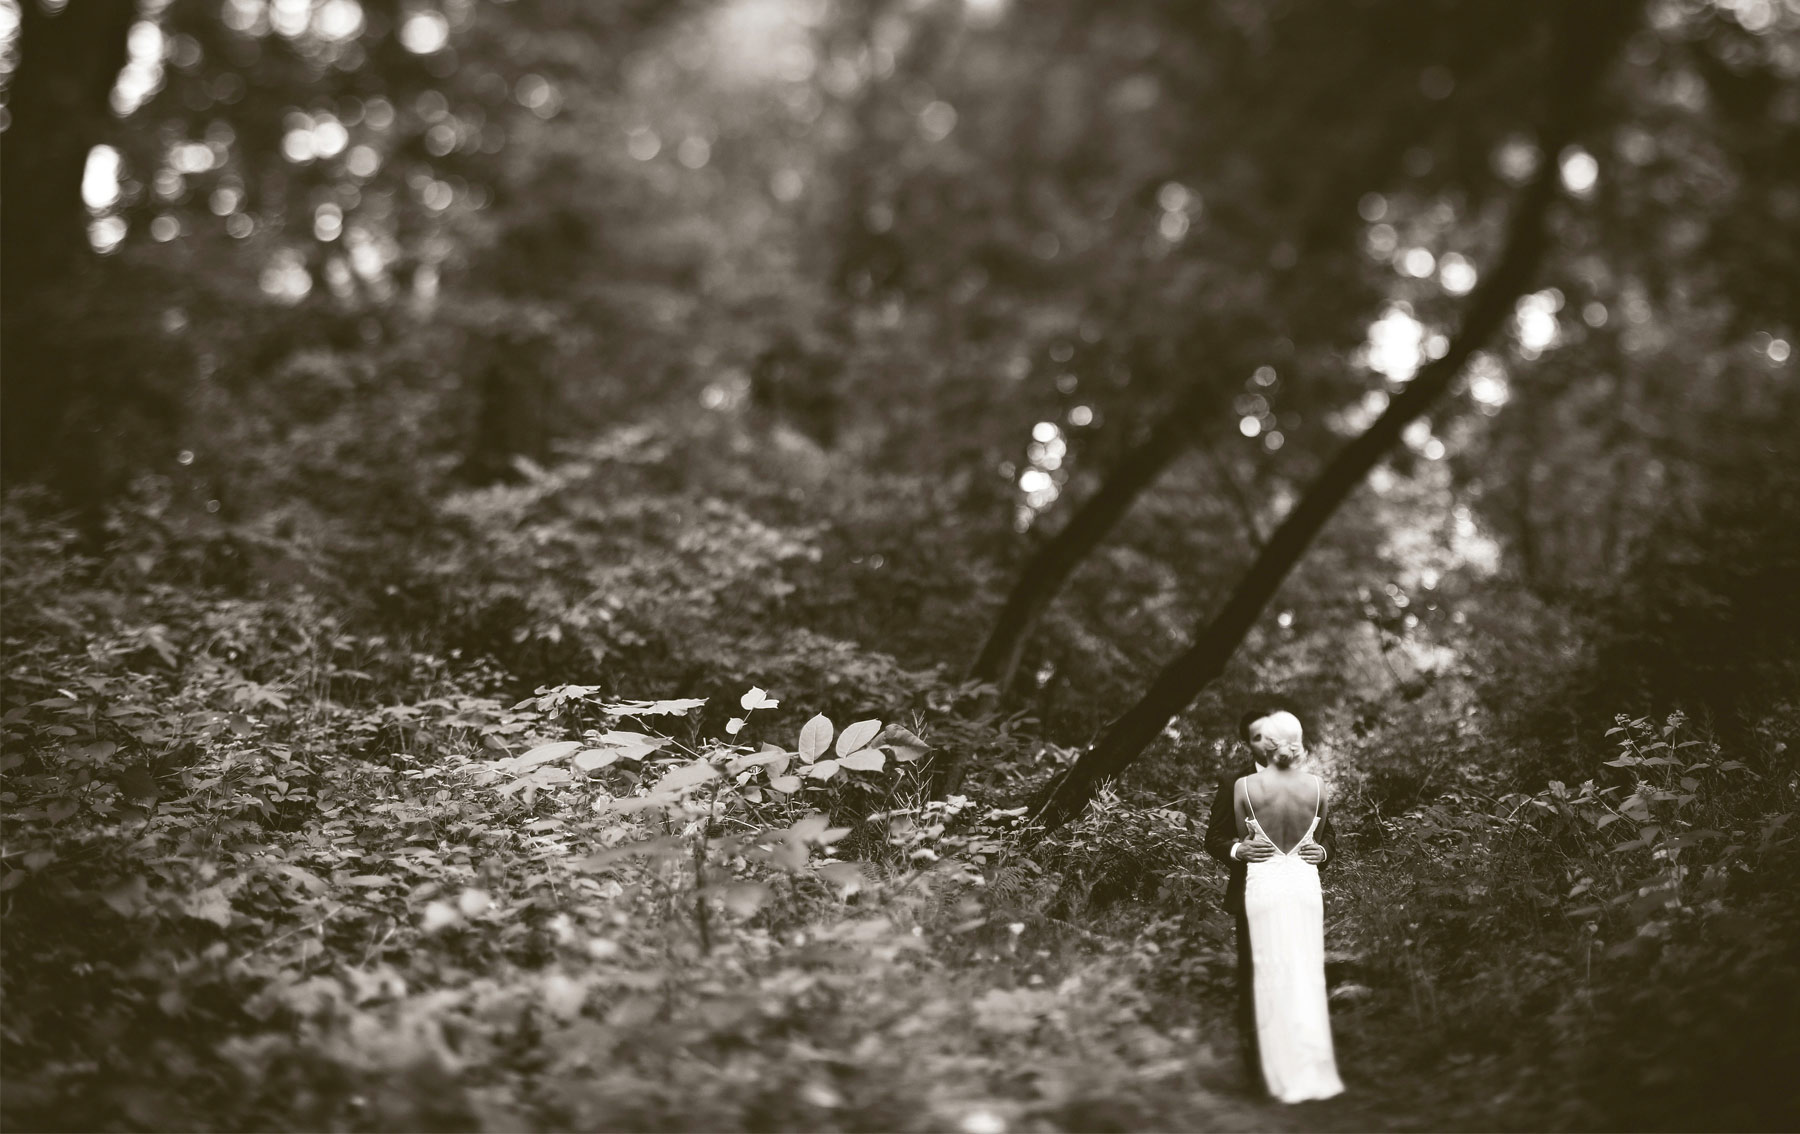 03-Stillwater-Minnesota-Wedding-Photography-by-Vick-Photography-Camrose-Hill-Outdoor-Woods-Rustic-First-Look-Tina-&-Eric.jpg